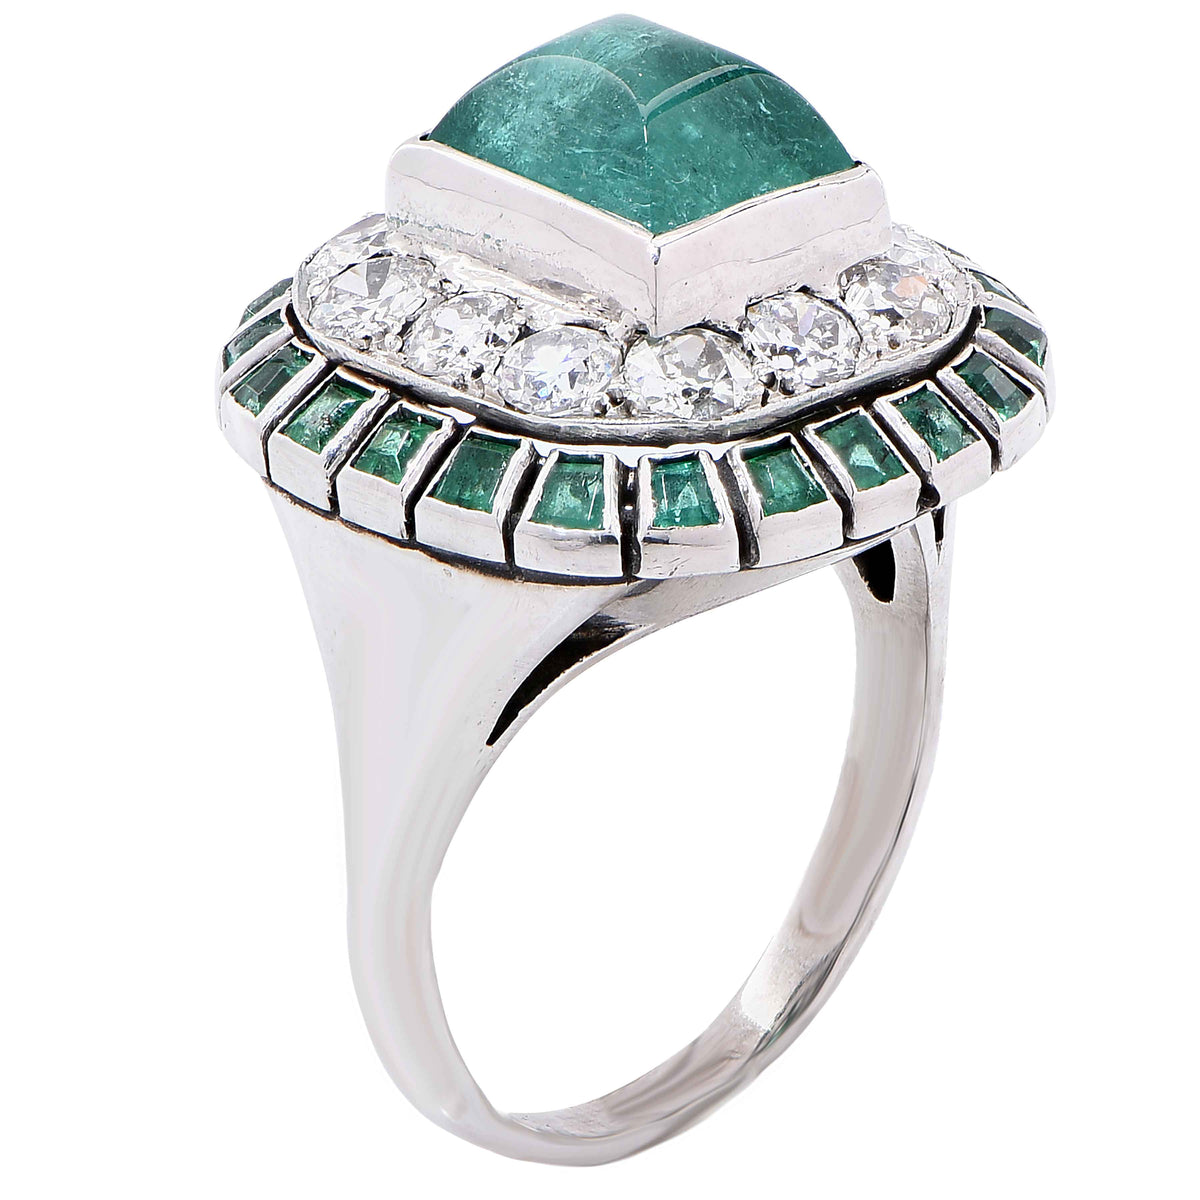 1920s Sugarloaf Cabochon Cut Emerald and Diamond 18 Karat White Gold Ring